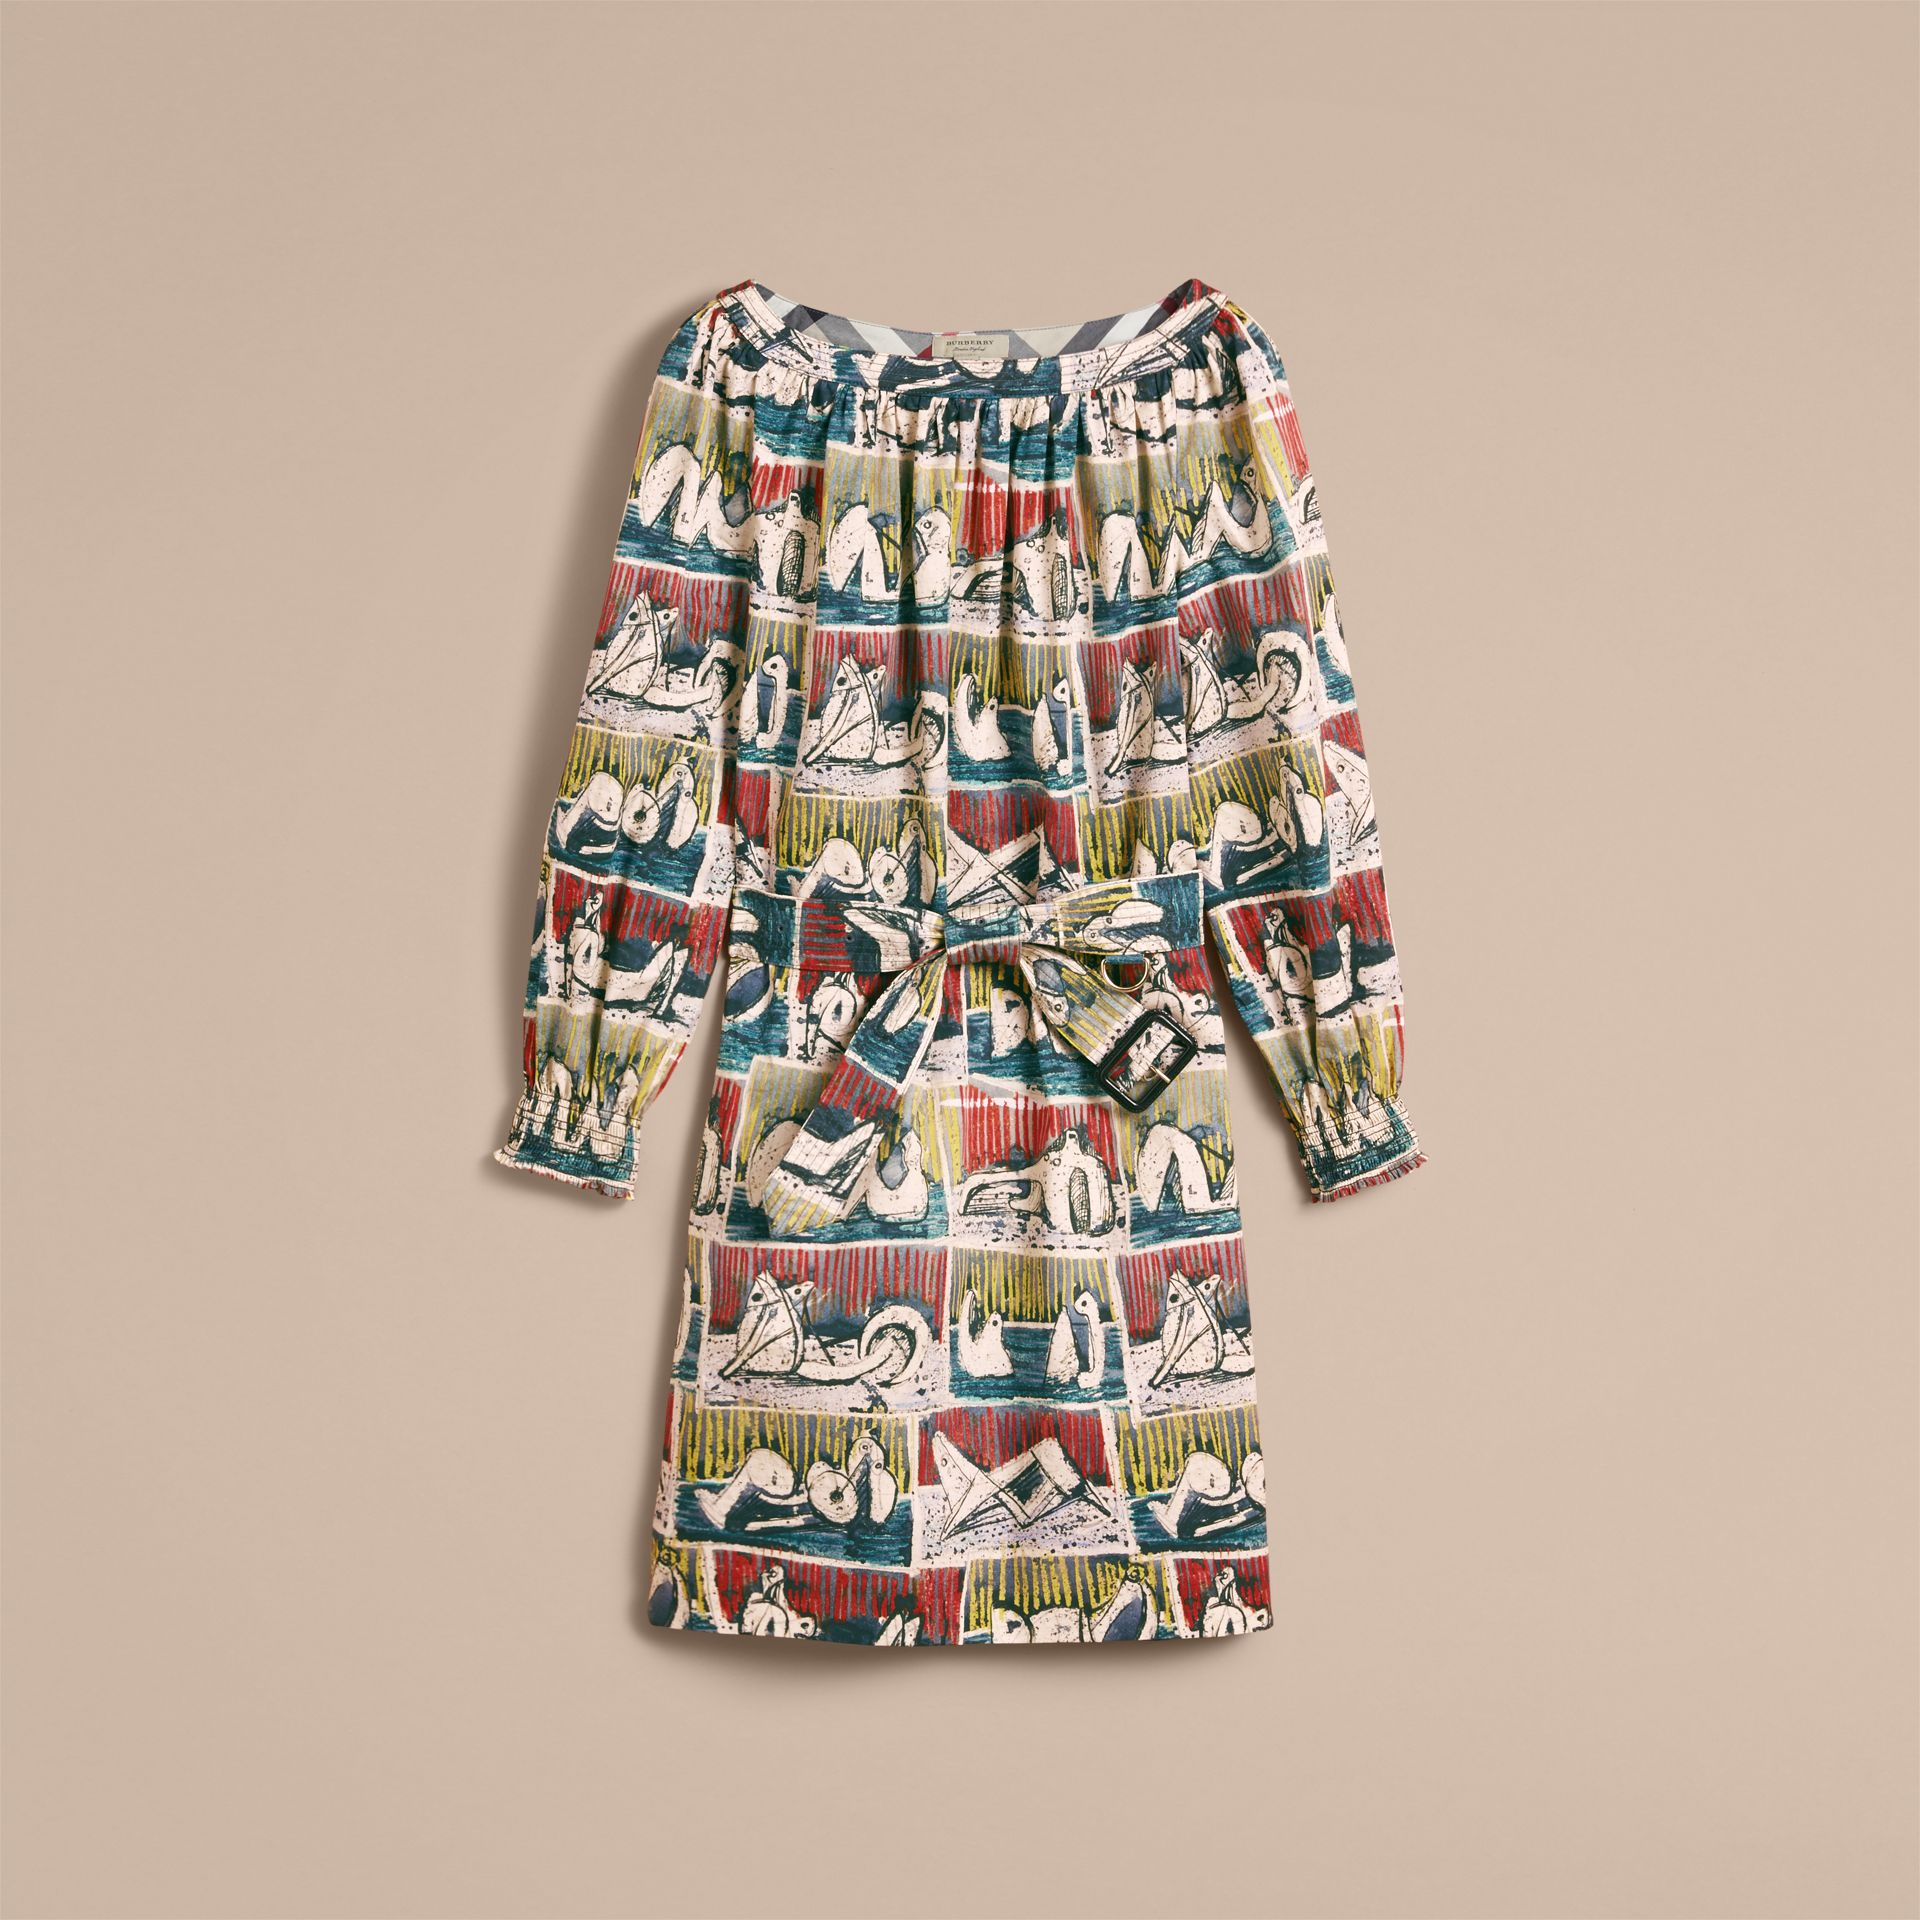 Reclining Figures Print Cotton Tunic Dress in Stone Blue - Women | Burberry United Kingdom - gallery image 4